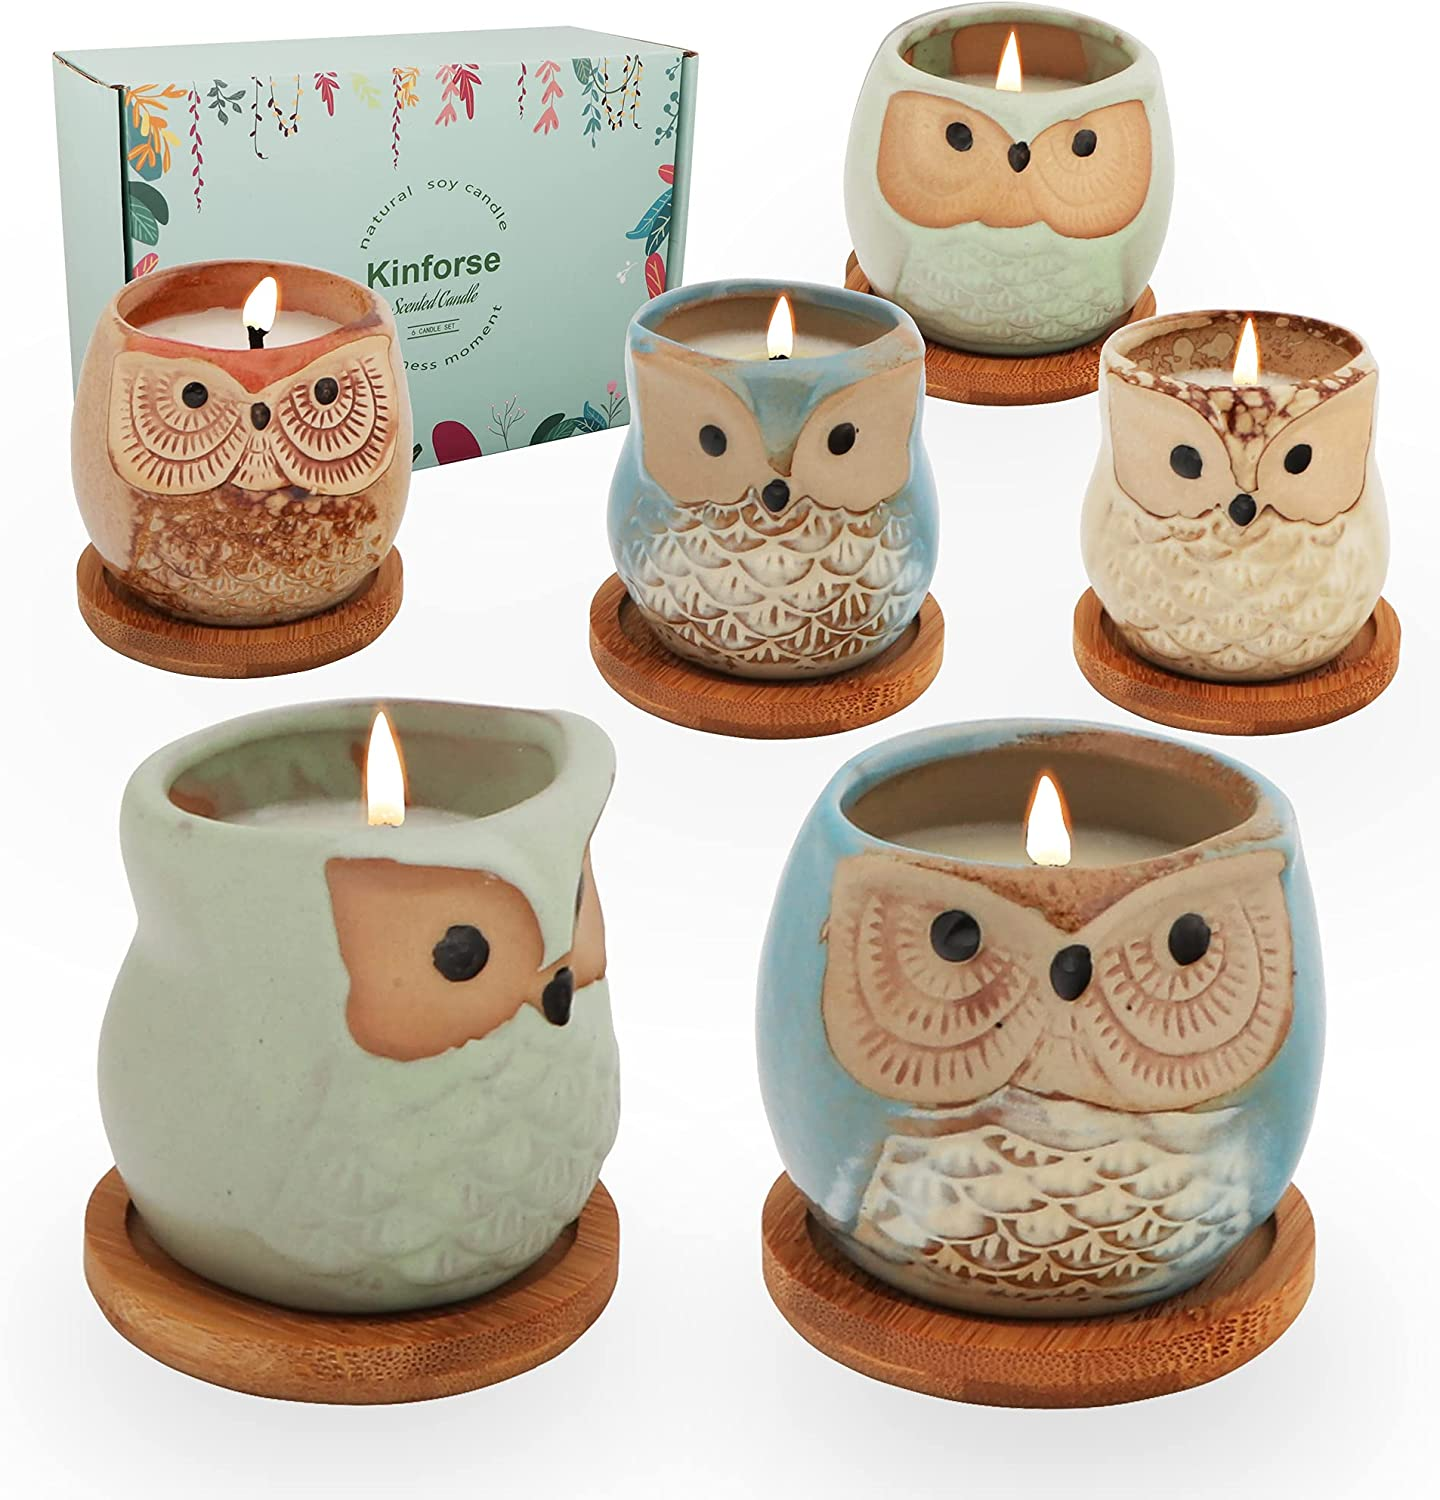 Kinforse Citronella Candles Outdoor Scented Candles Sets Gifts for Women, 6x3.5oz Novelty Owl Natural Soy Candles for Home Scented, Aromatherapy Candles Bulk for Garden, Porch, Outdoor Patio Decor